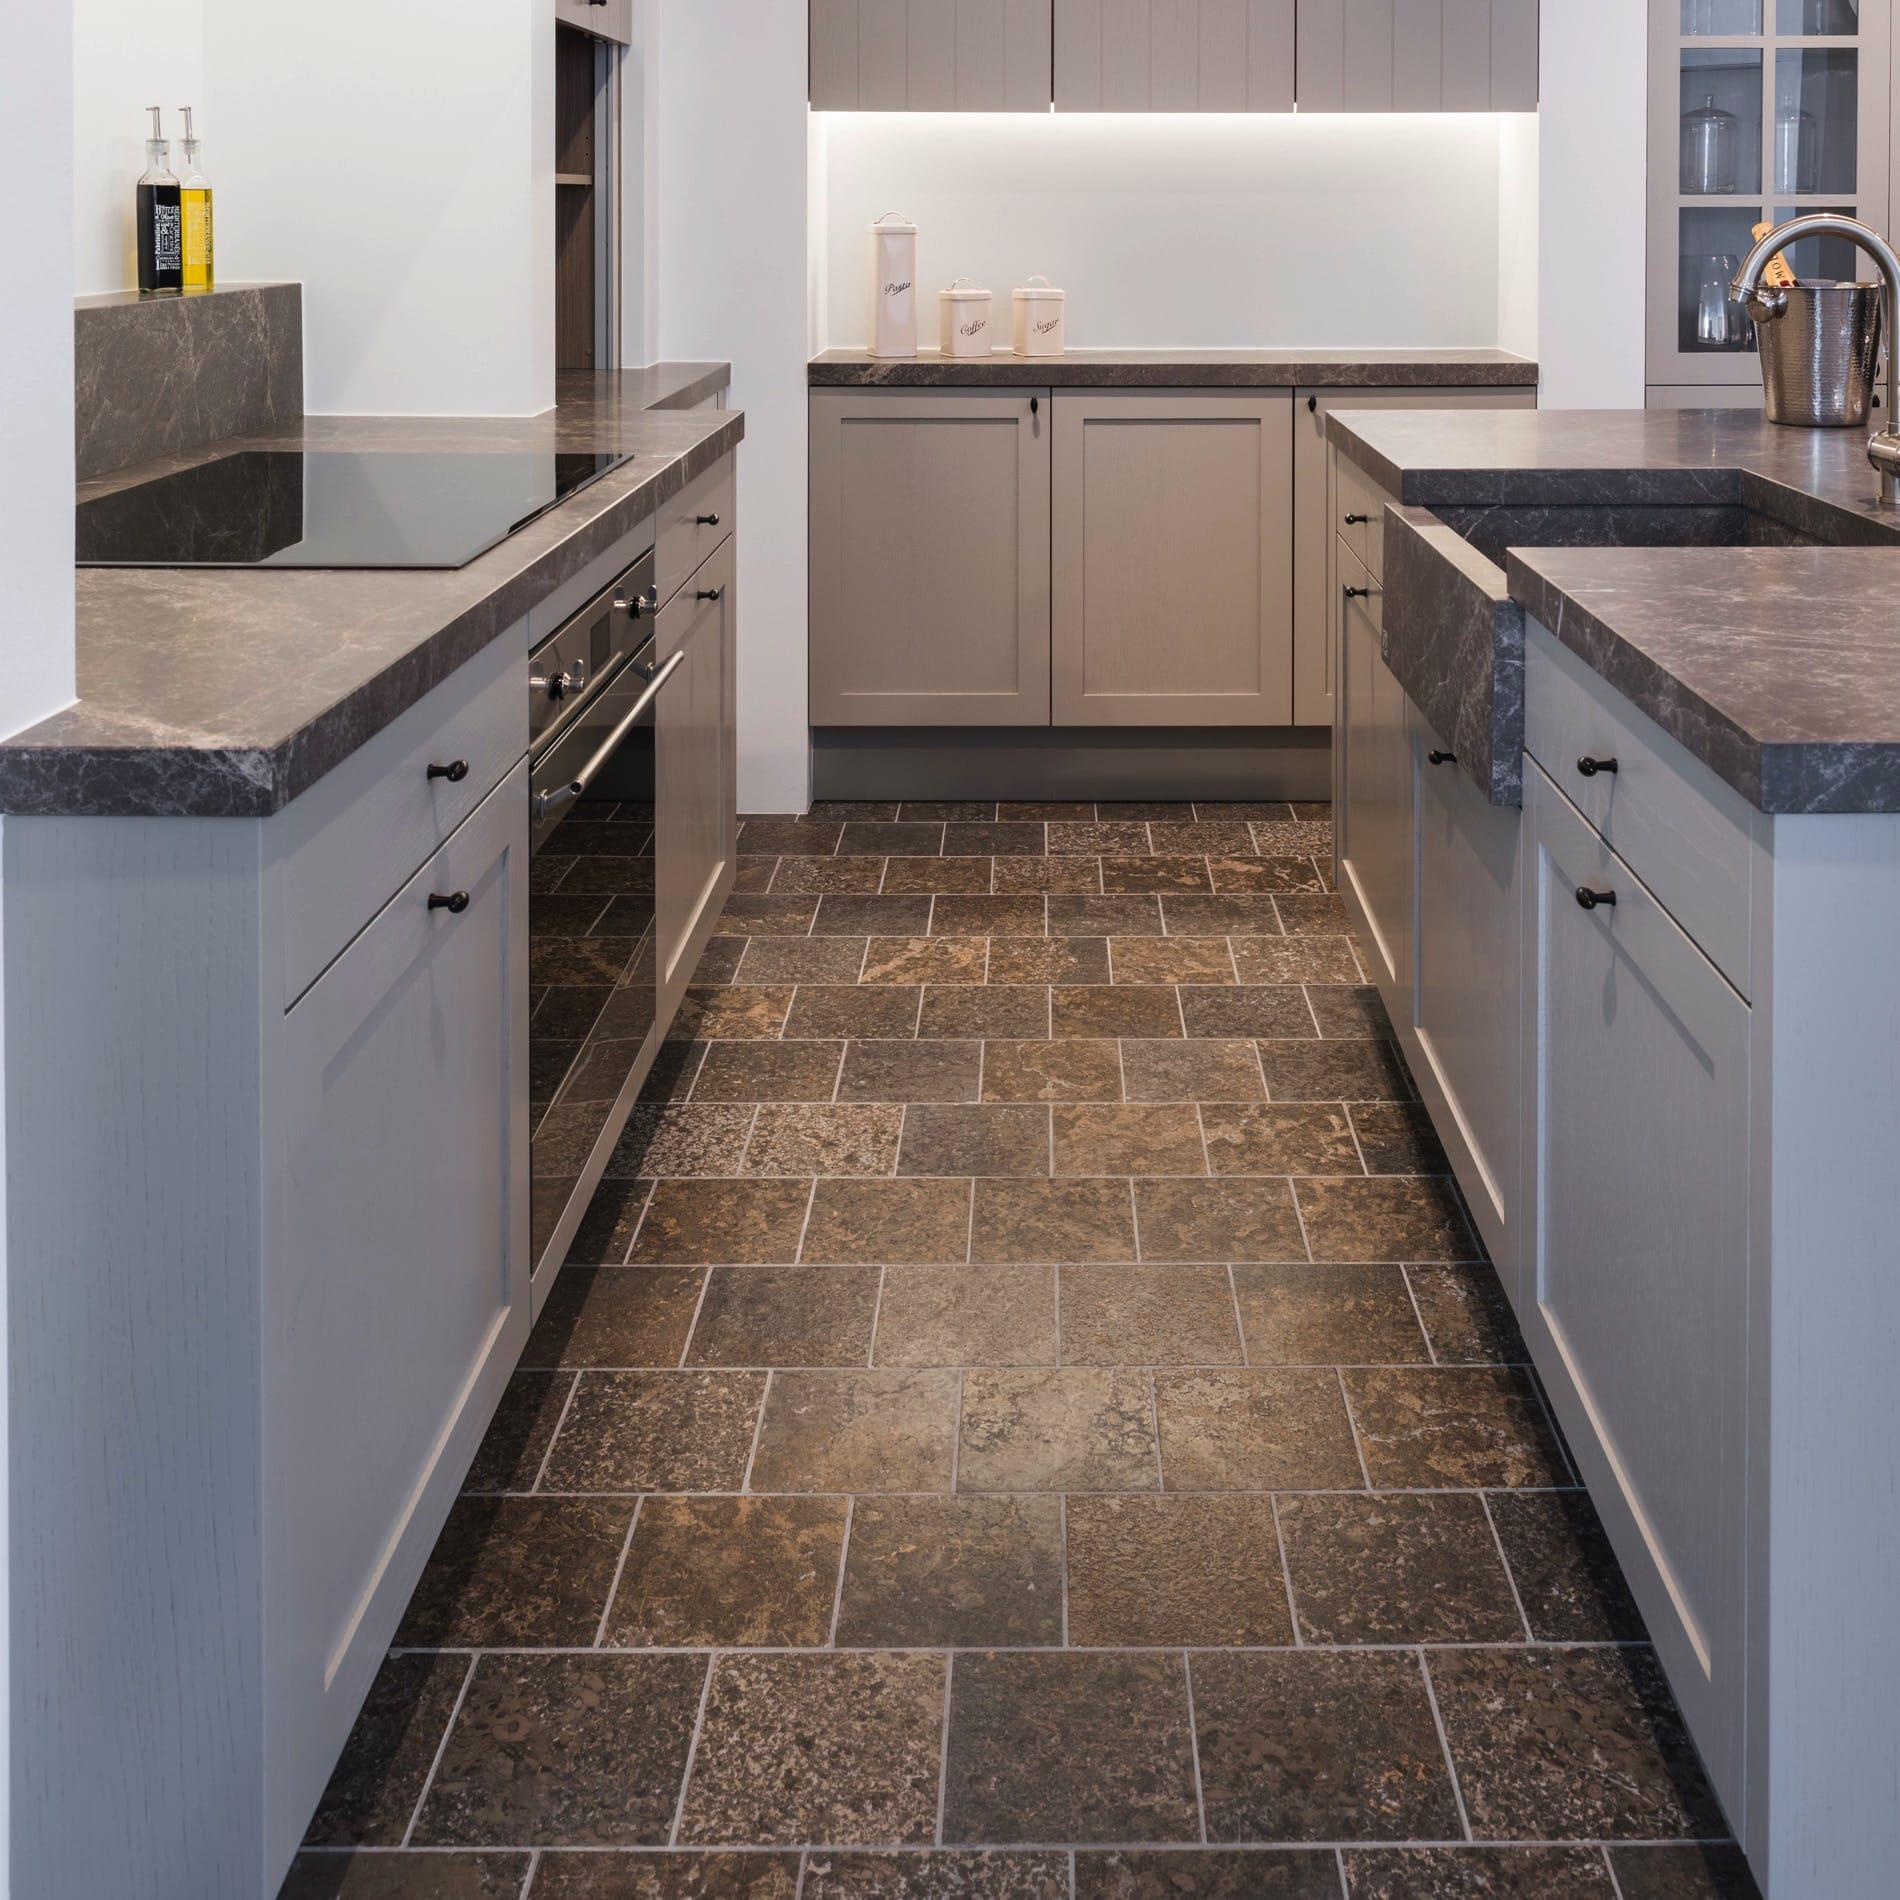 Natural stone and tile trends 2019-2020-Image-2